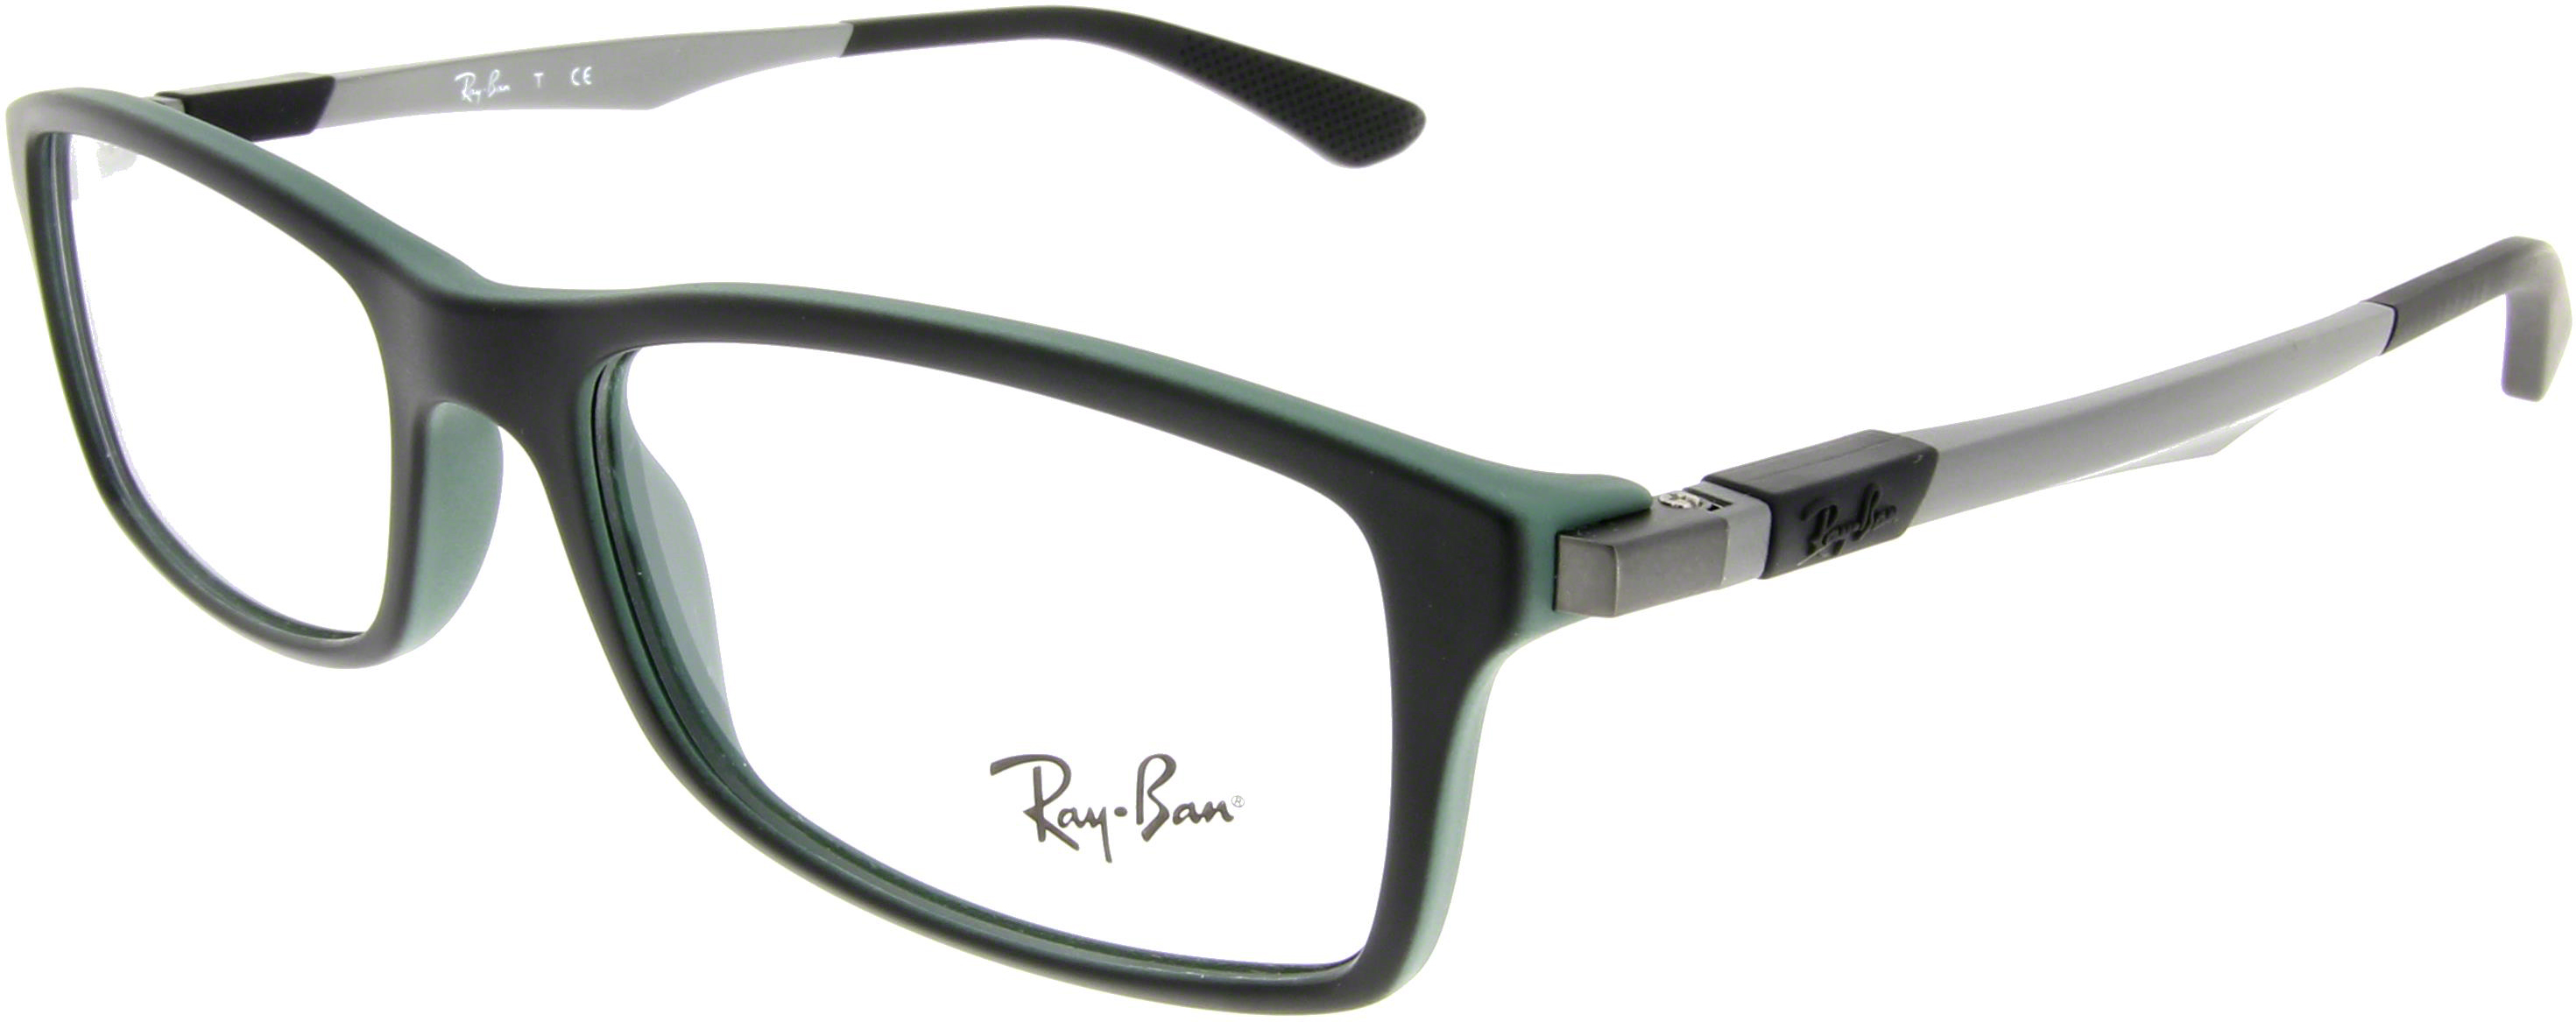 a9d66b61b8 Ray Ban Brille Rb 7017 « Heritage Malta